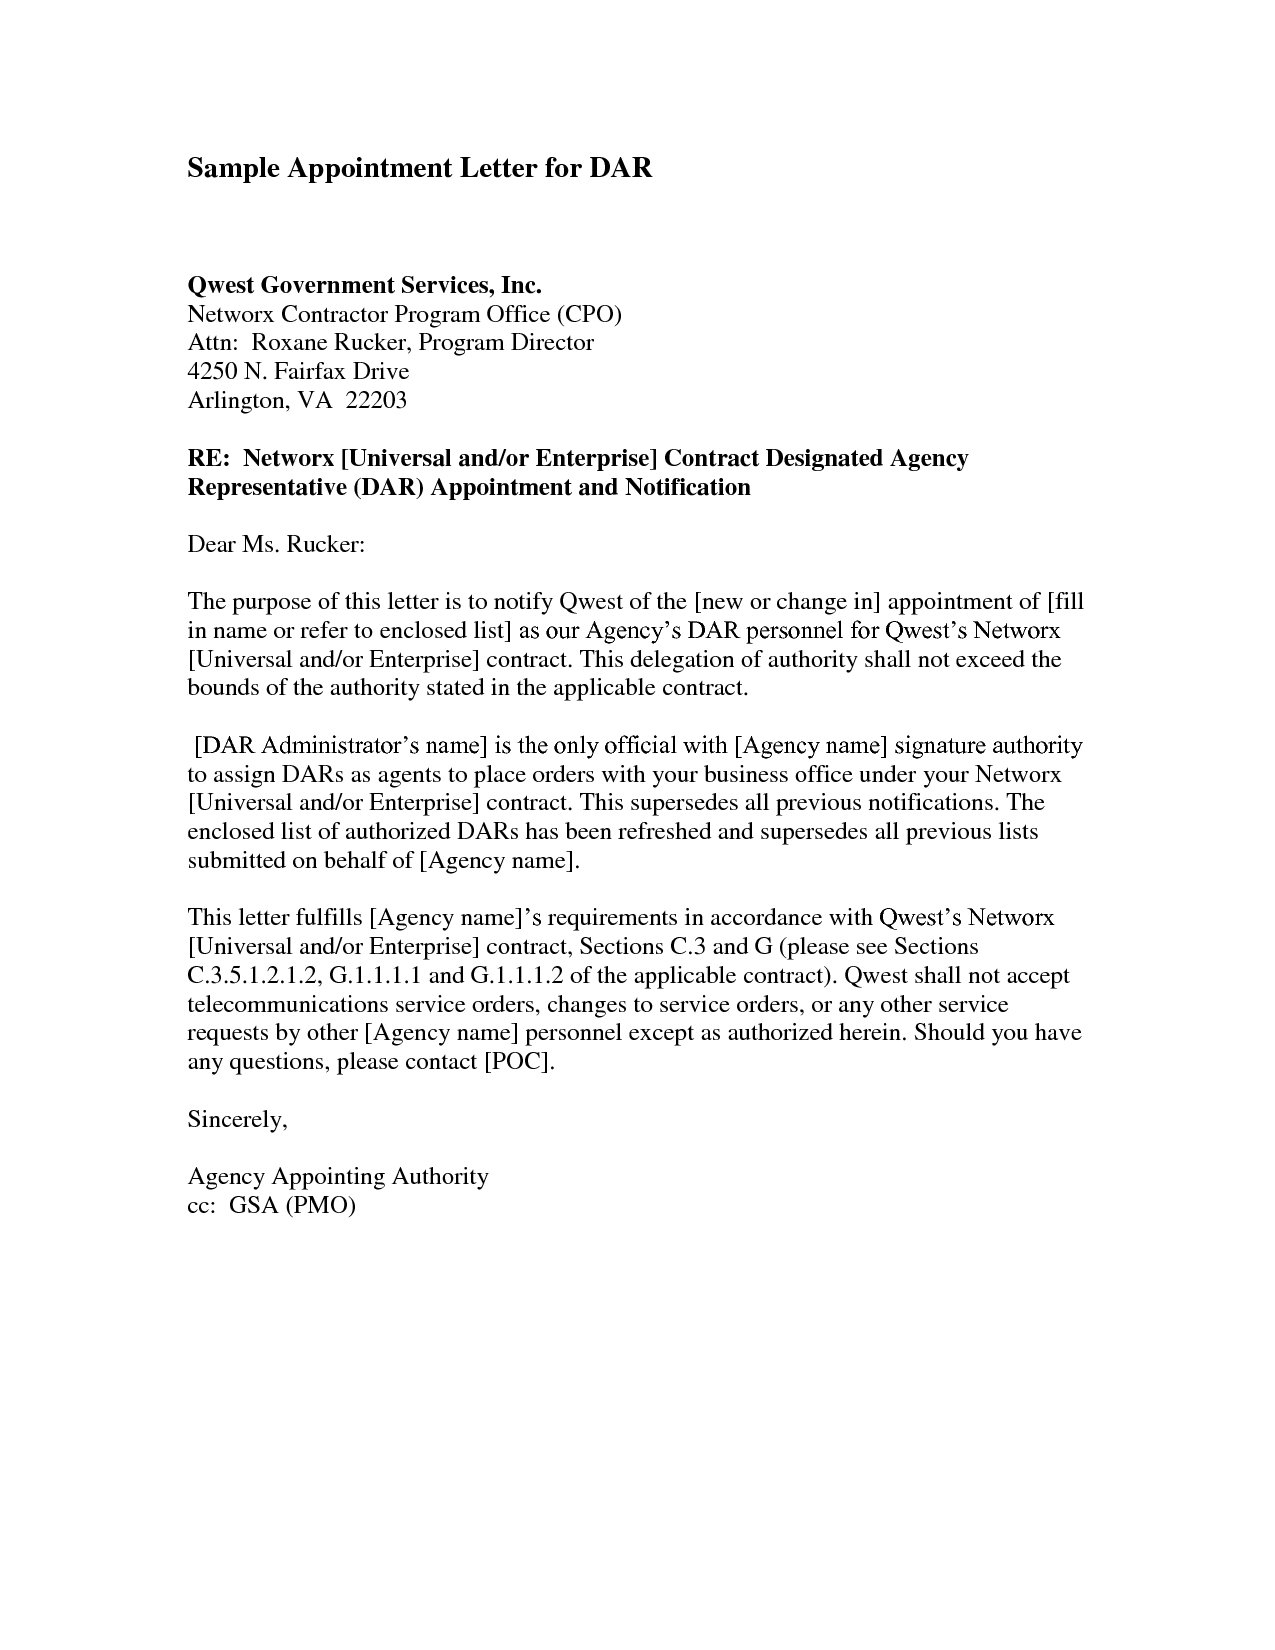 Settlement Agreement Letter Template - Trustee Appointment Letter Director Trustee is Appointed or